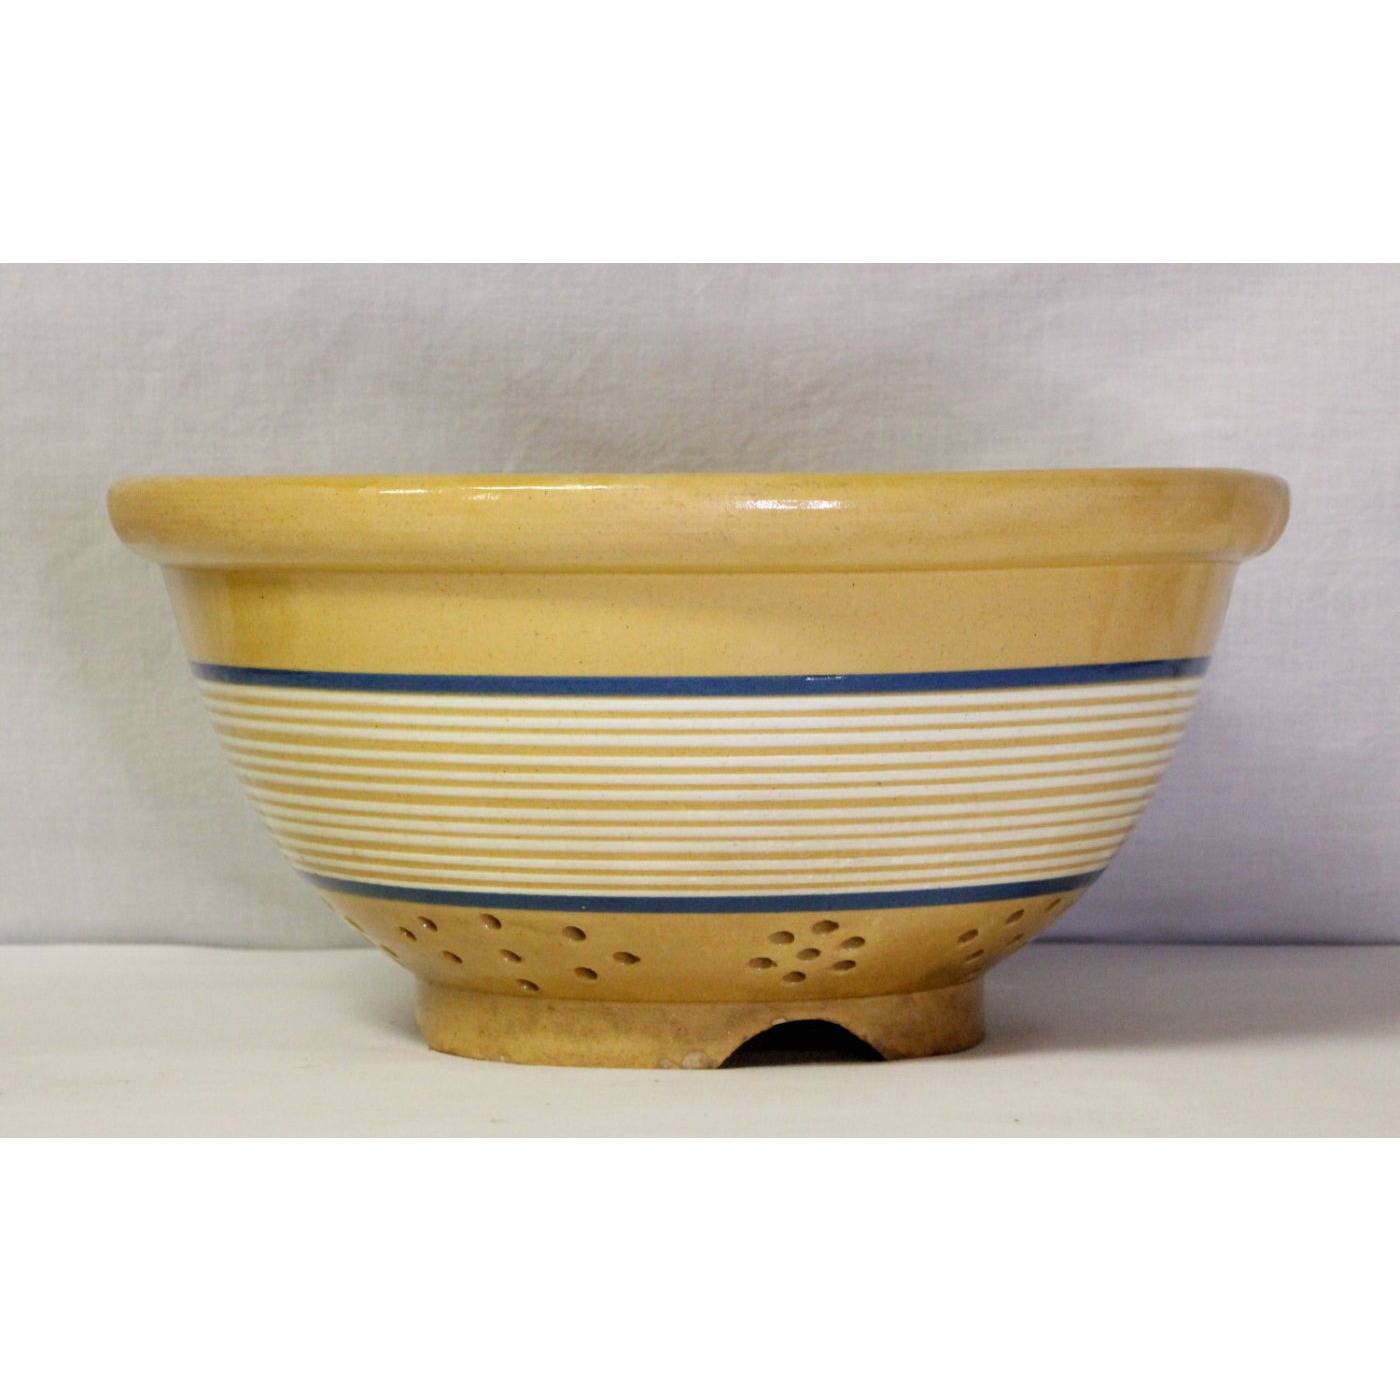 Extraordinary Blue and White Banded Yellow Ware Colander - THE BEST!